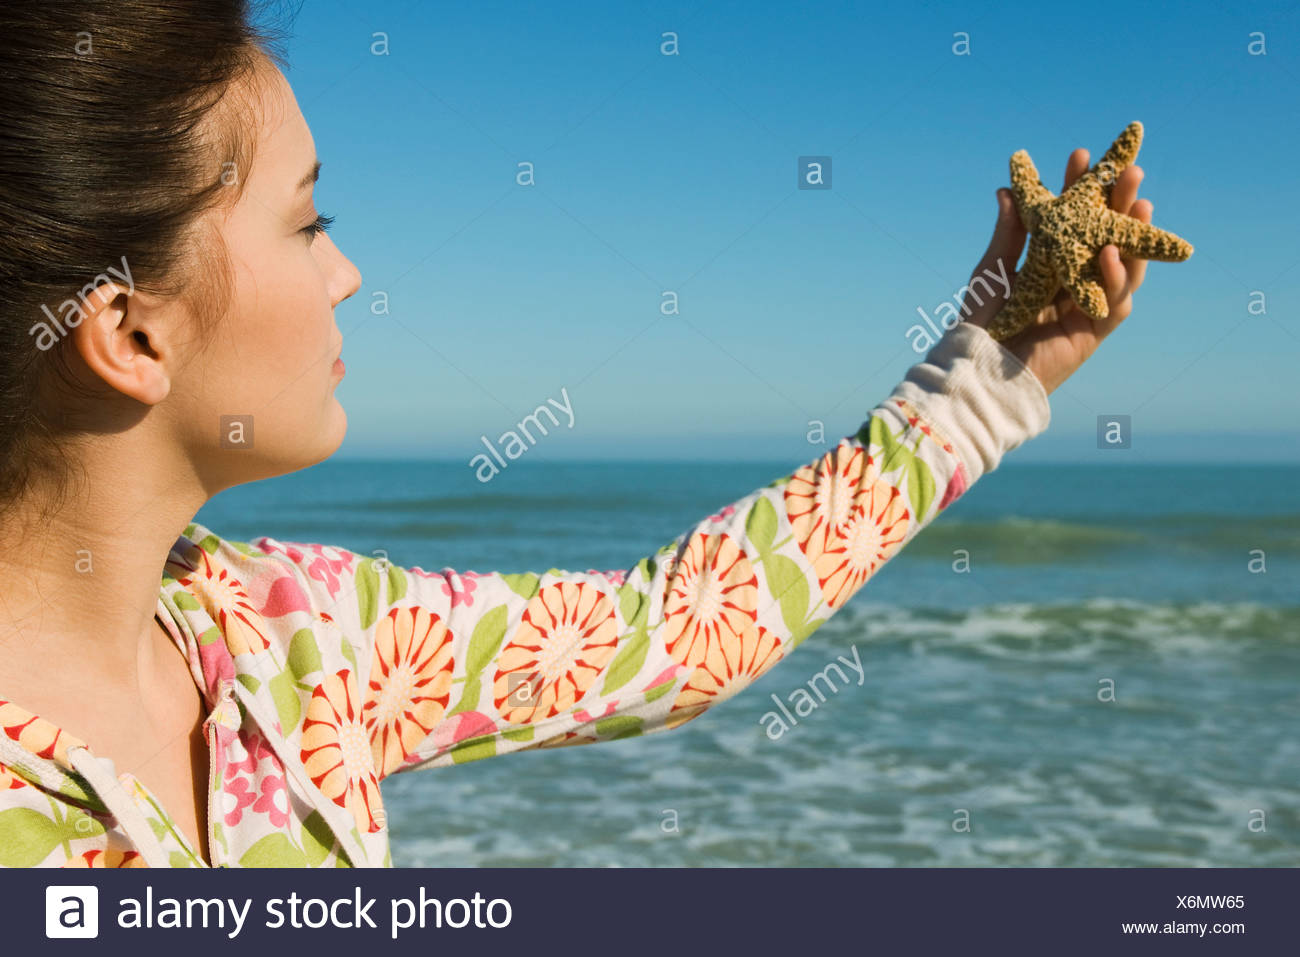 Teenage girl holding out starfish at the beach - Stock Image